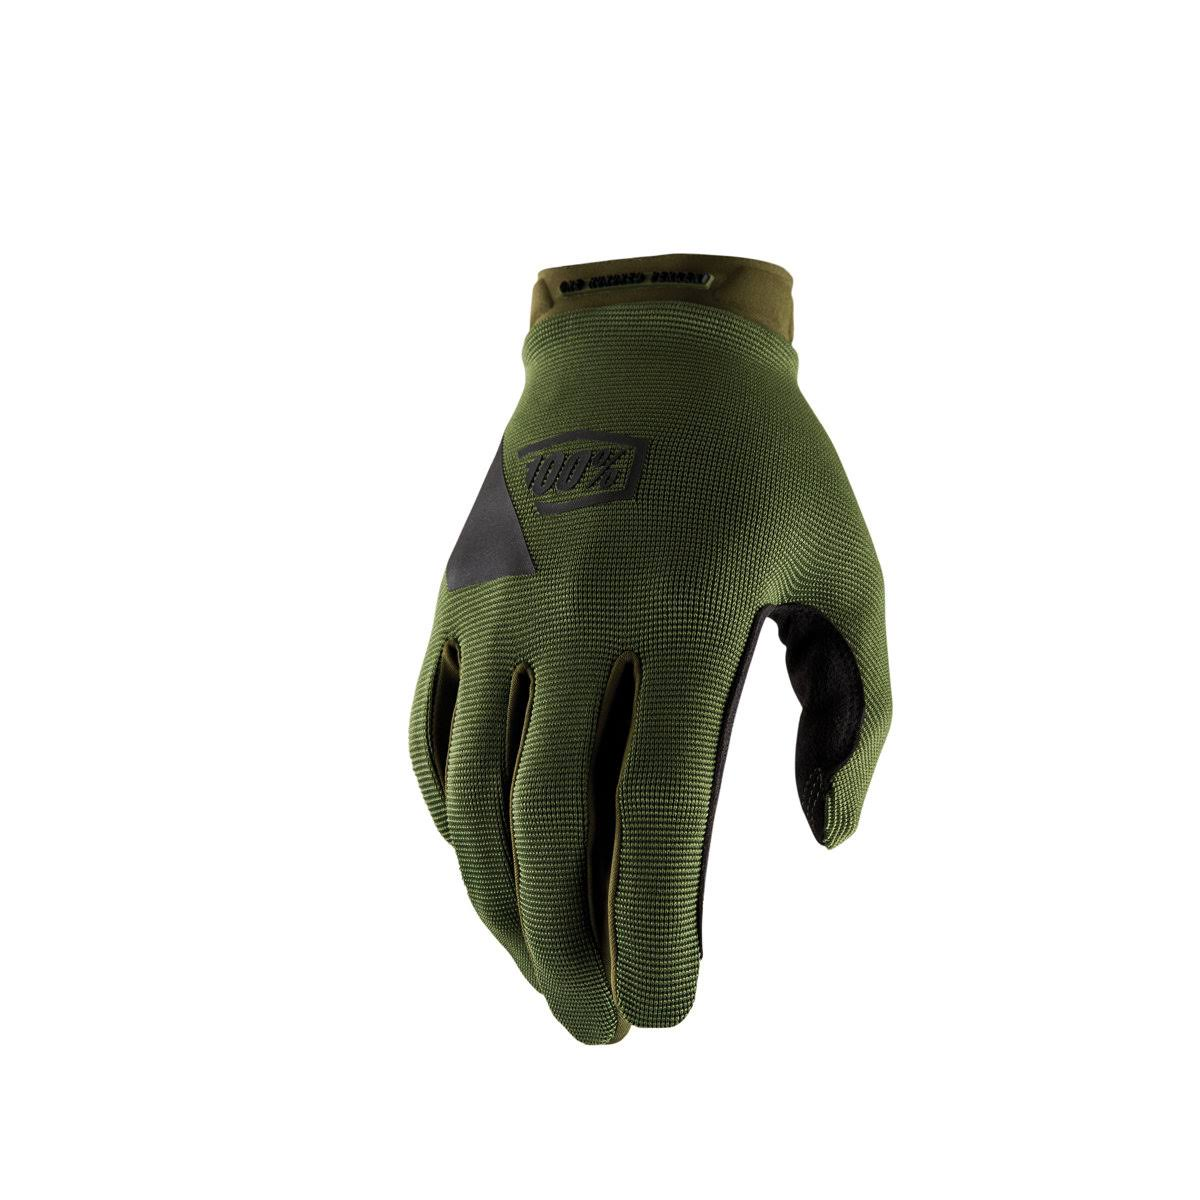 100 Percent Ridecamp Gloves - X Large, Fatigue